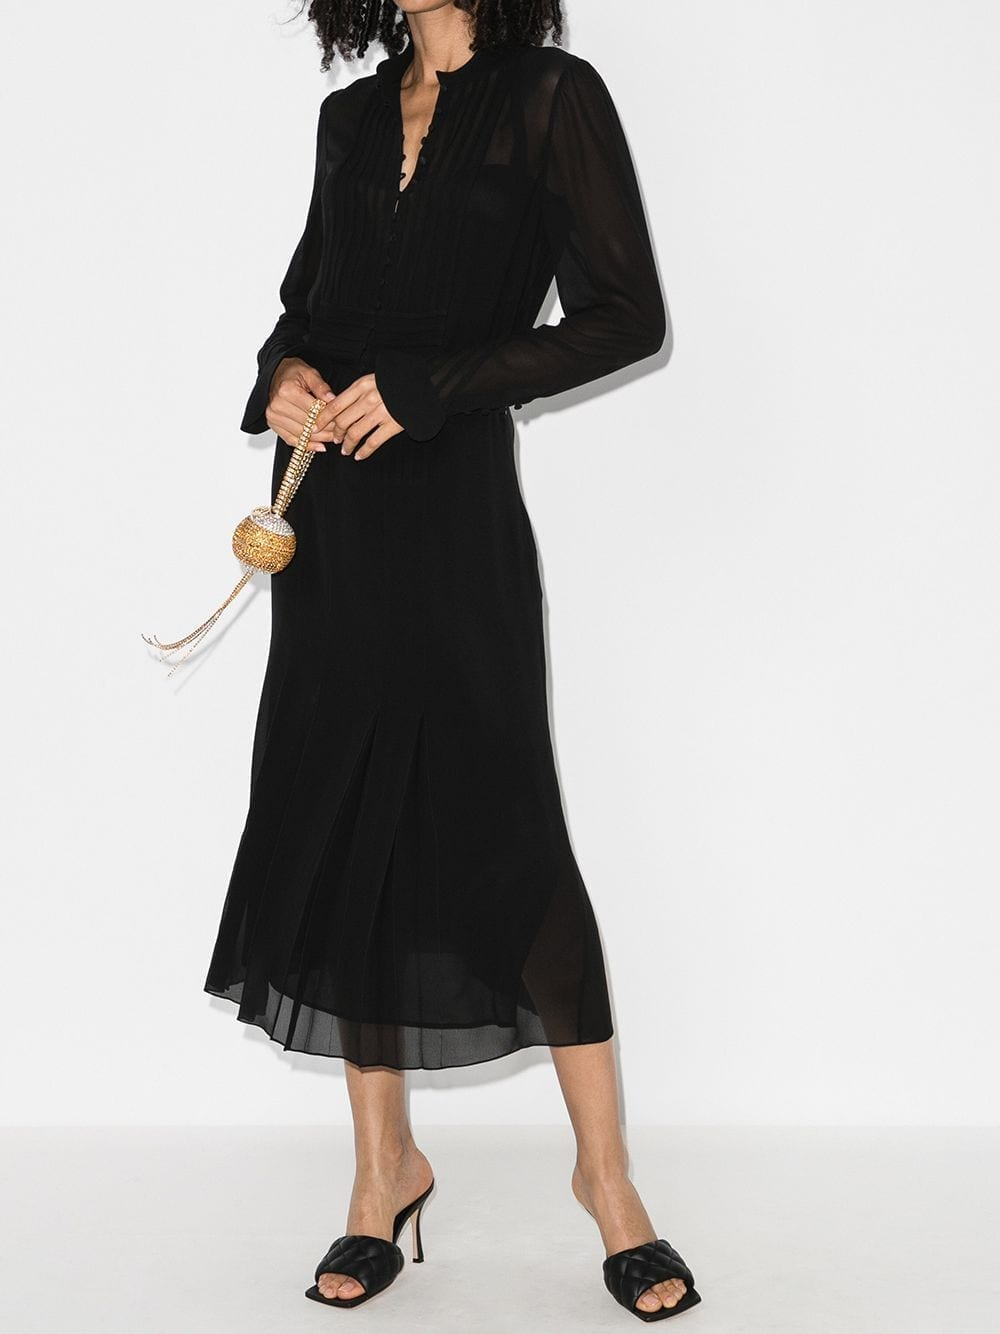 SAINT LAURENT Sheer Shirt Dress